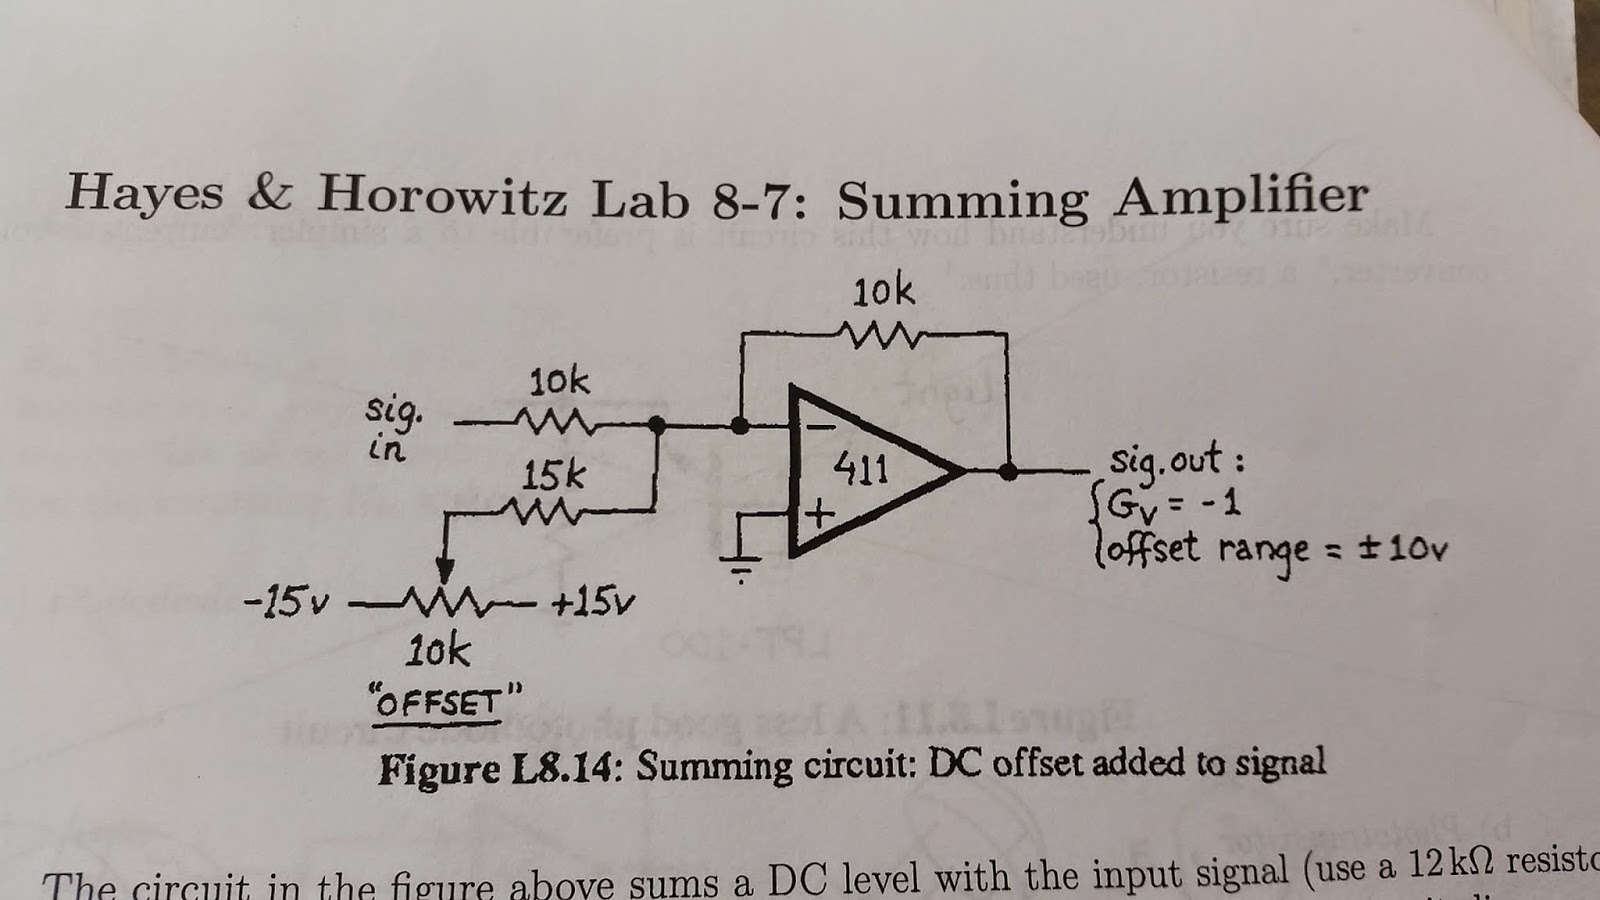 Physics 310 Amplifier You Would Think This Is A Non Inverting Summing Circuit Sums Dc Level With The Input Signal Allowing To Add Offset We Applied 5vpp Sine Wave At 1khz And